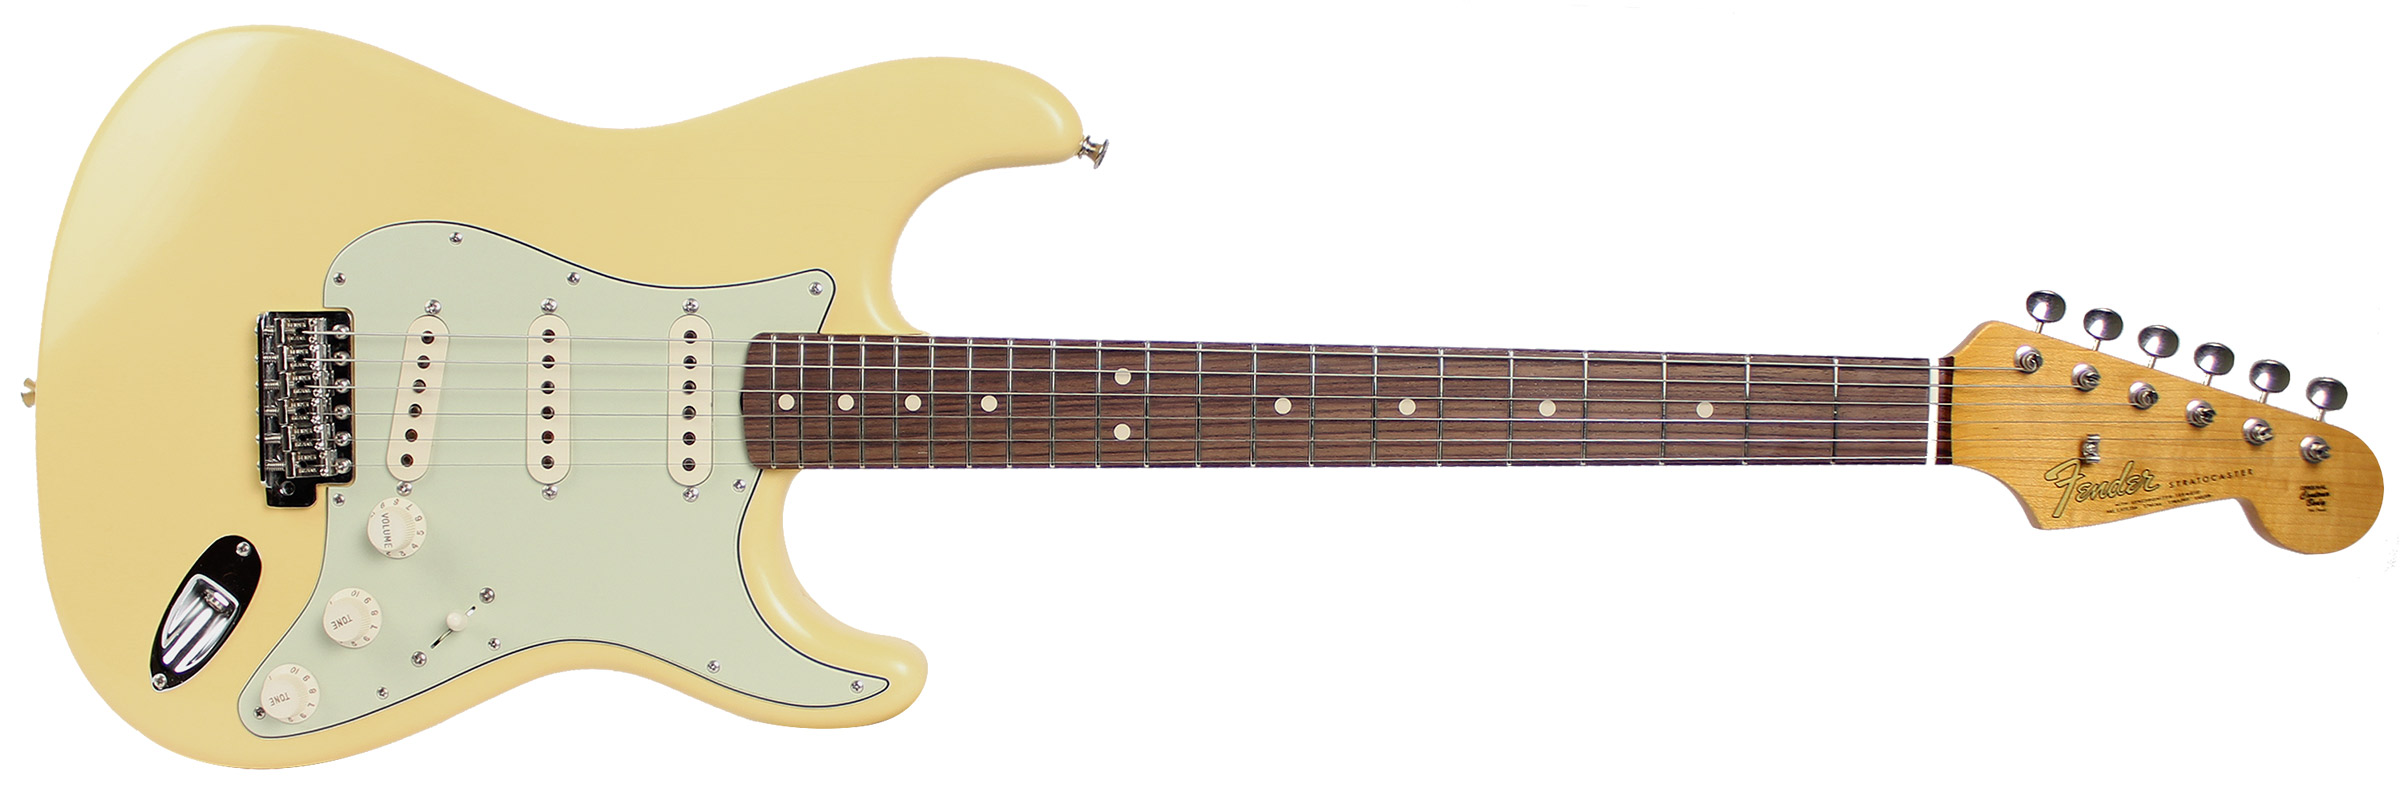 GUITARRA FENDER 64 STRATOCASTER ANNIVERSARY CLOSET CLASSIC 151-9640-895 AGED VINTAGE WHITE